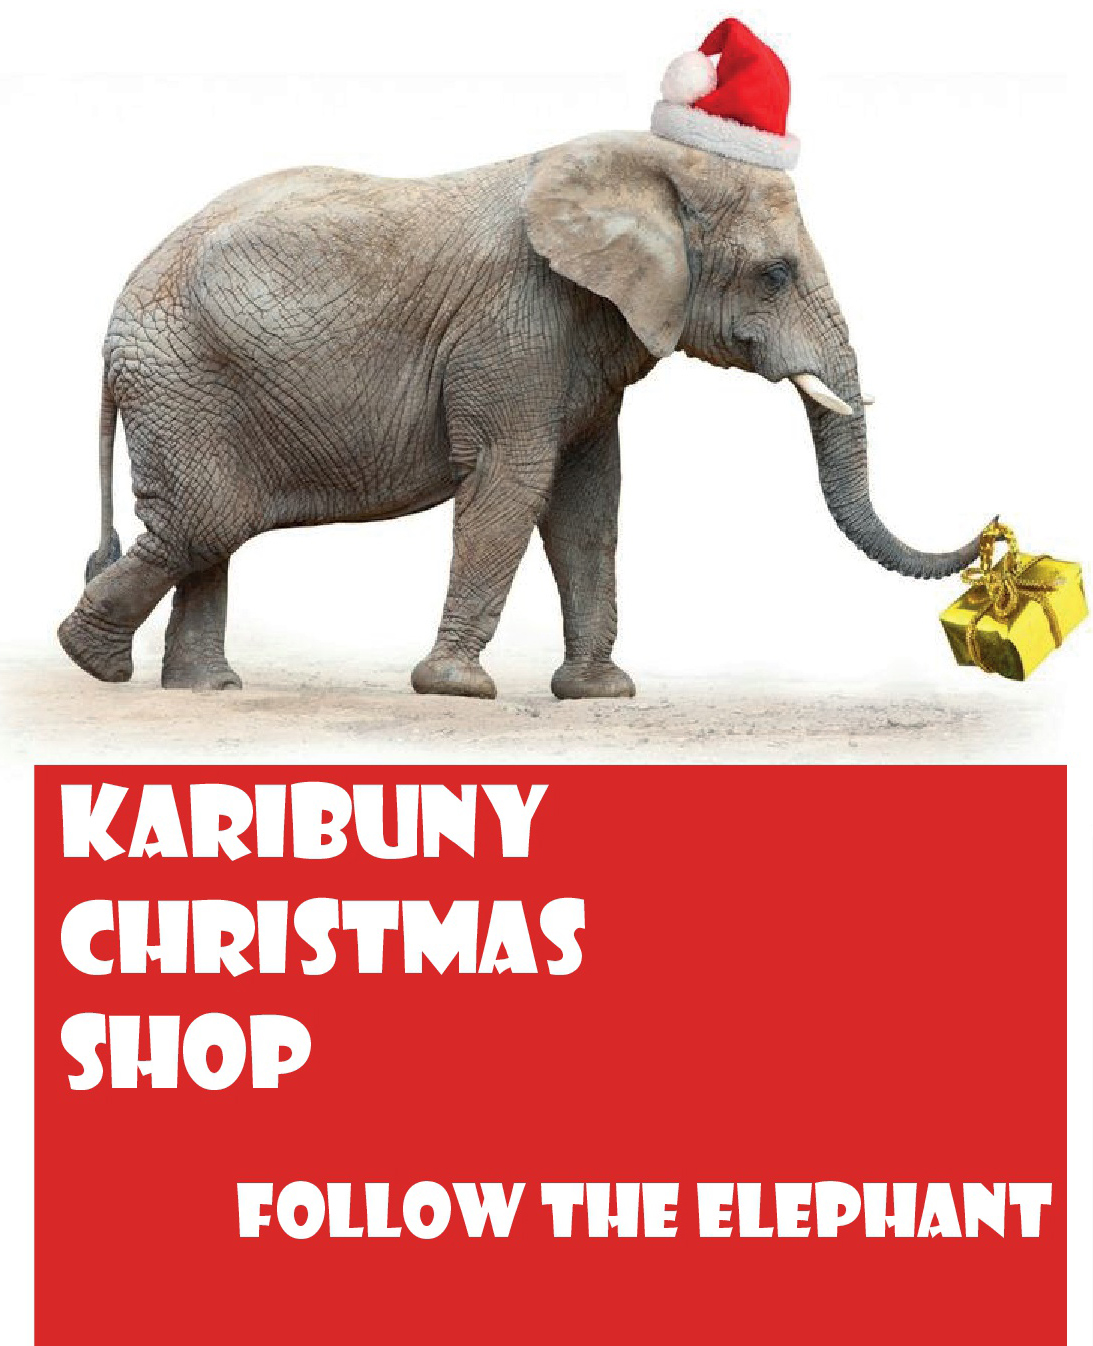 Karibuny Christmas shop